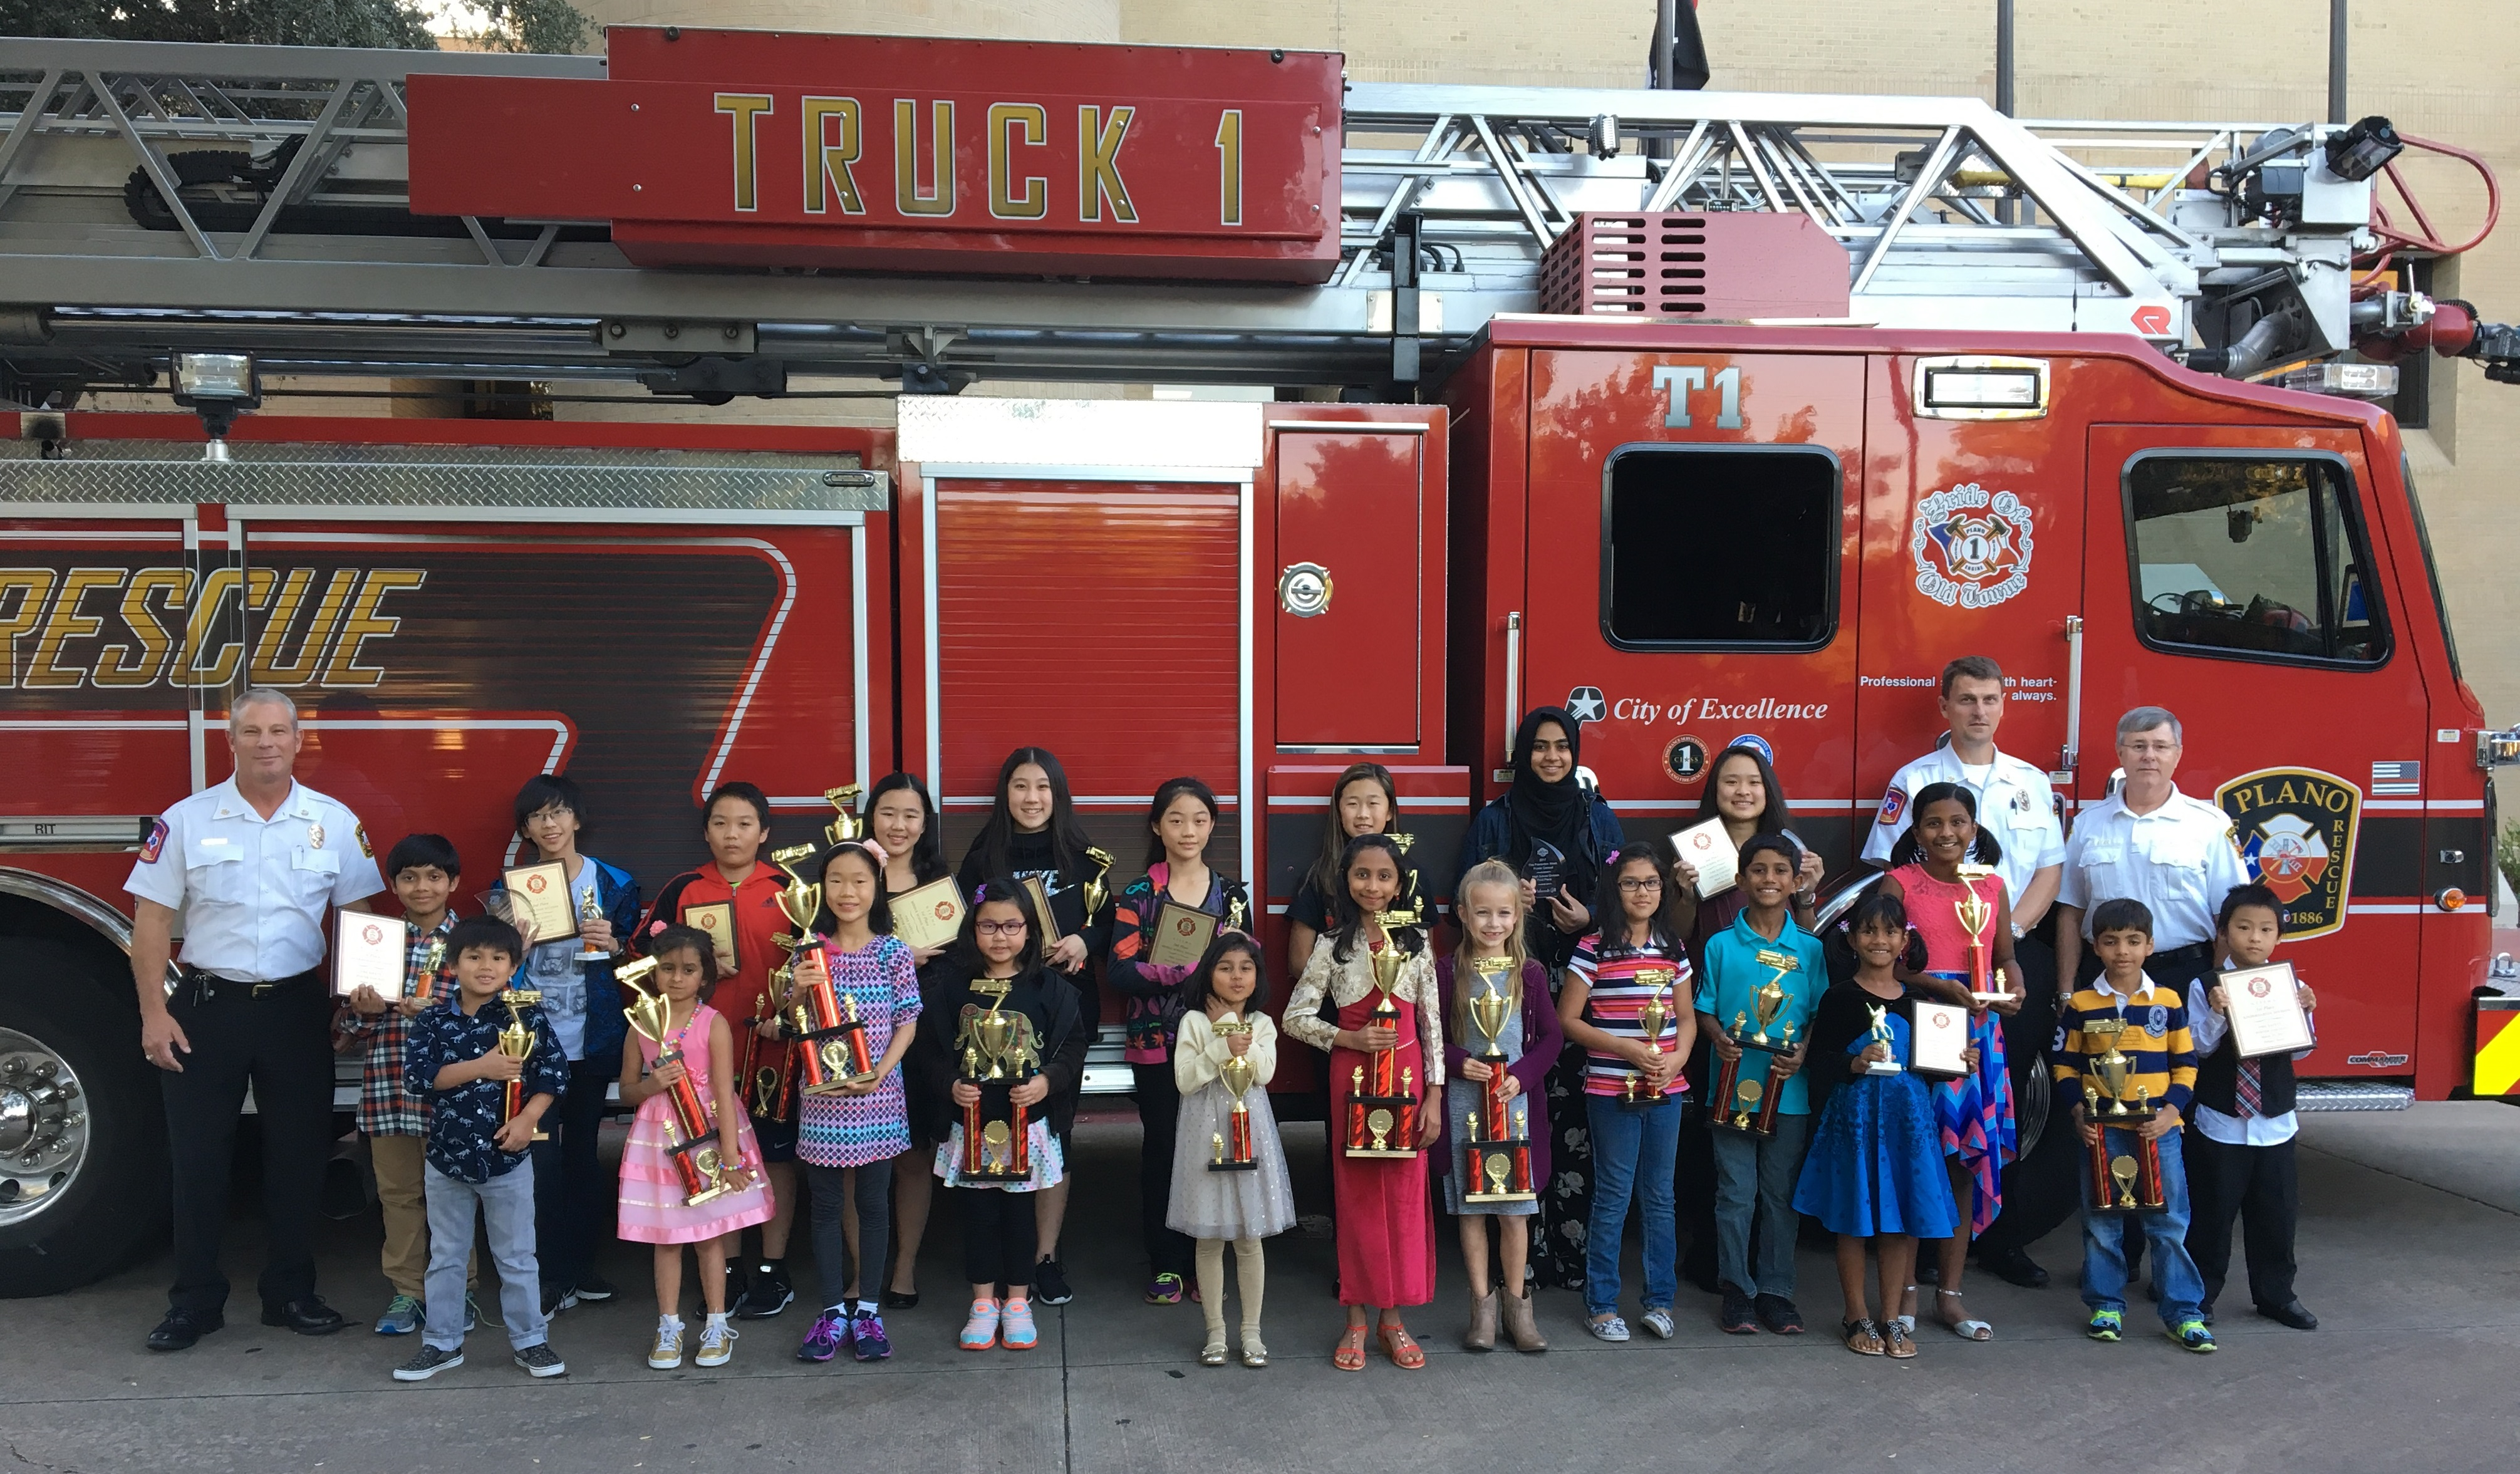 Group photo of winners with trophies and firetruck